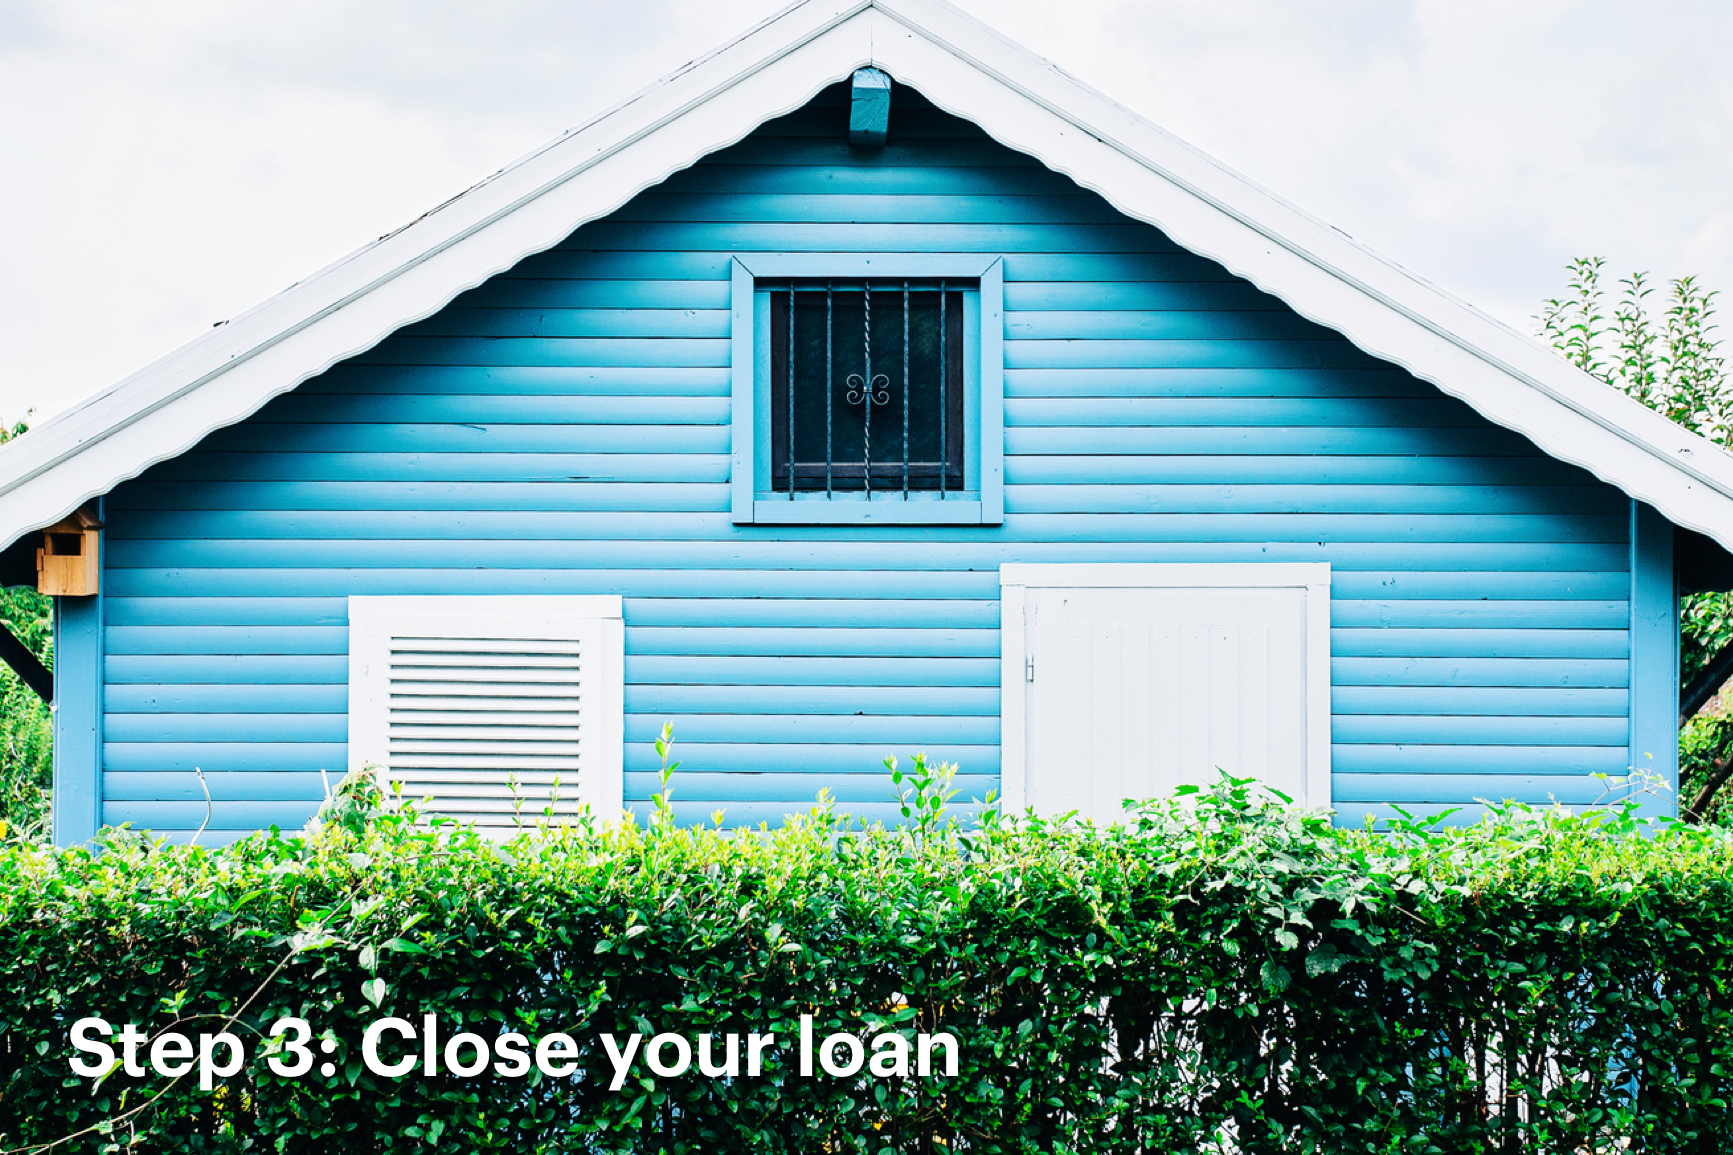 Close Up of Side Panel of Blue Home Behind Green Shrubs with Text that Reads: Step 3: Close Your Loan